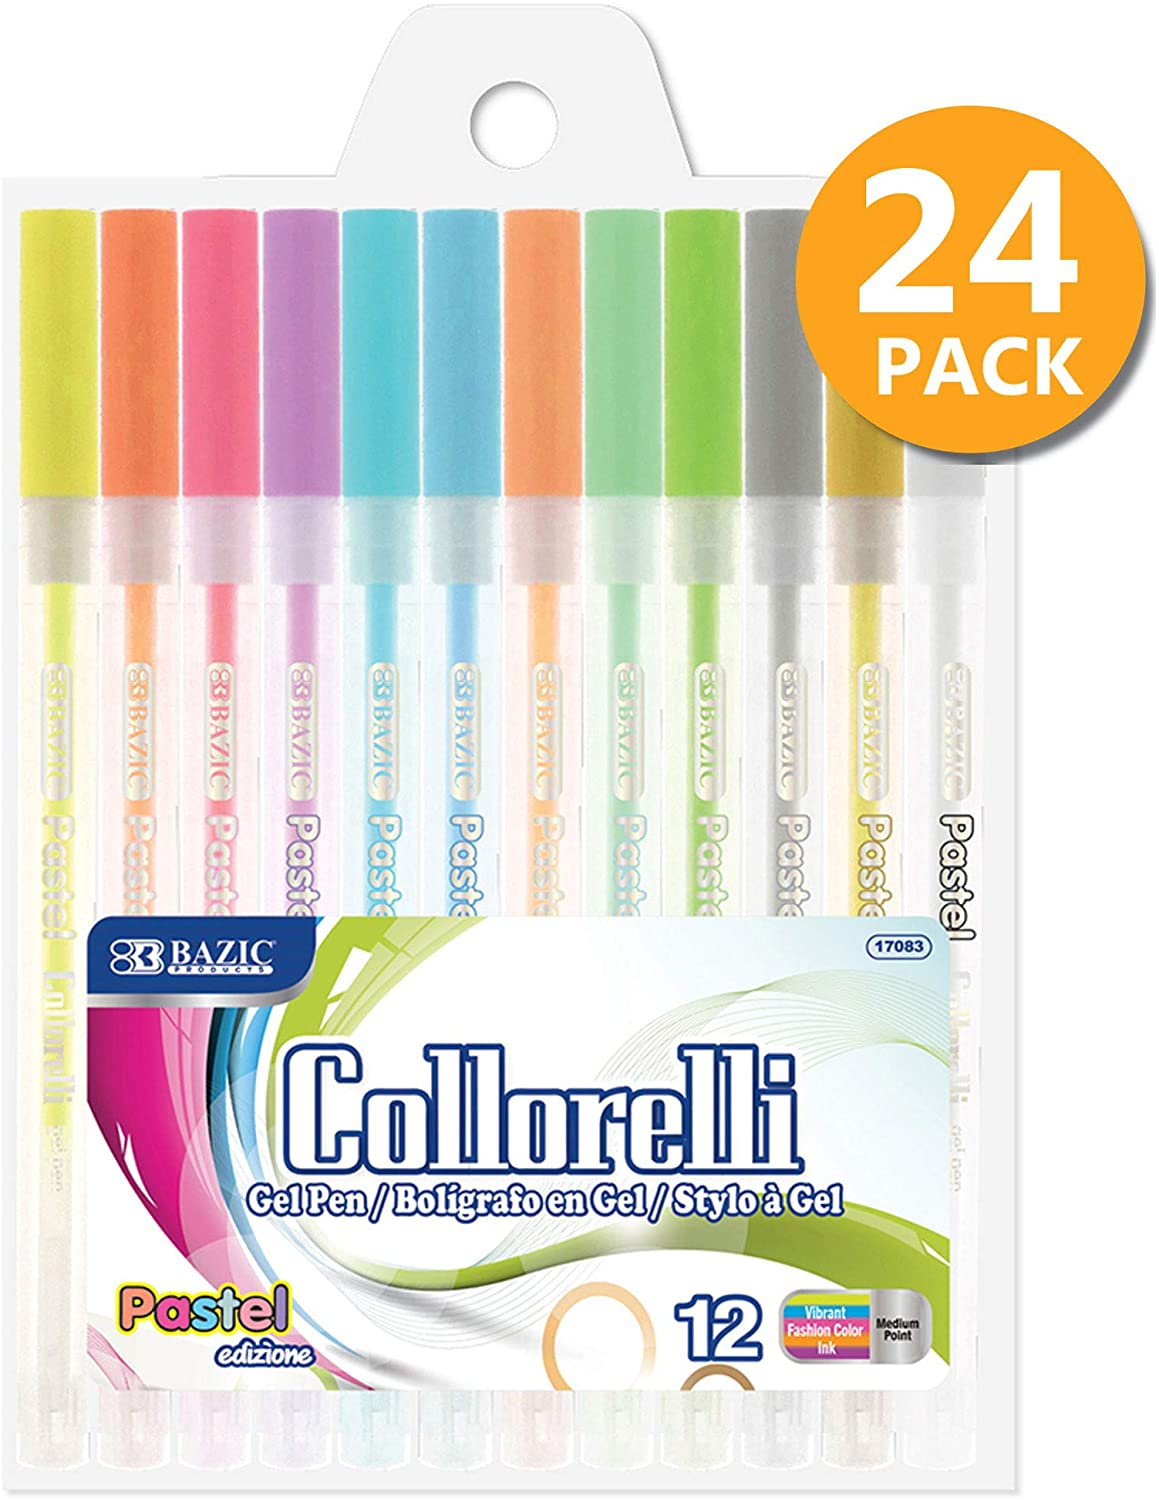 BAZIC 12 Pastel Color Collorelli Gel Pen, Rollerball Point Macarons Neon Colors, Coloring Gift Card Painting Writing Art Drawing, 24-Pack